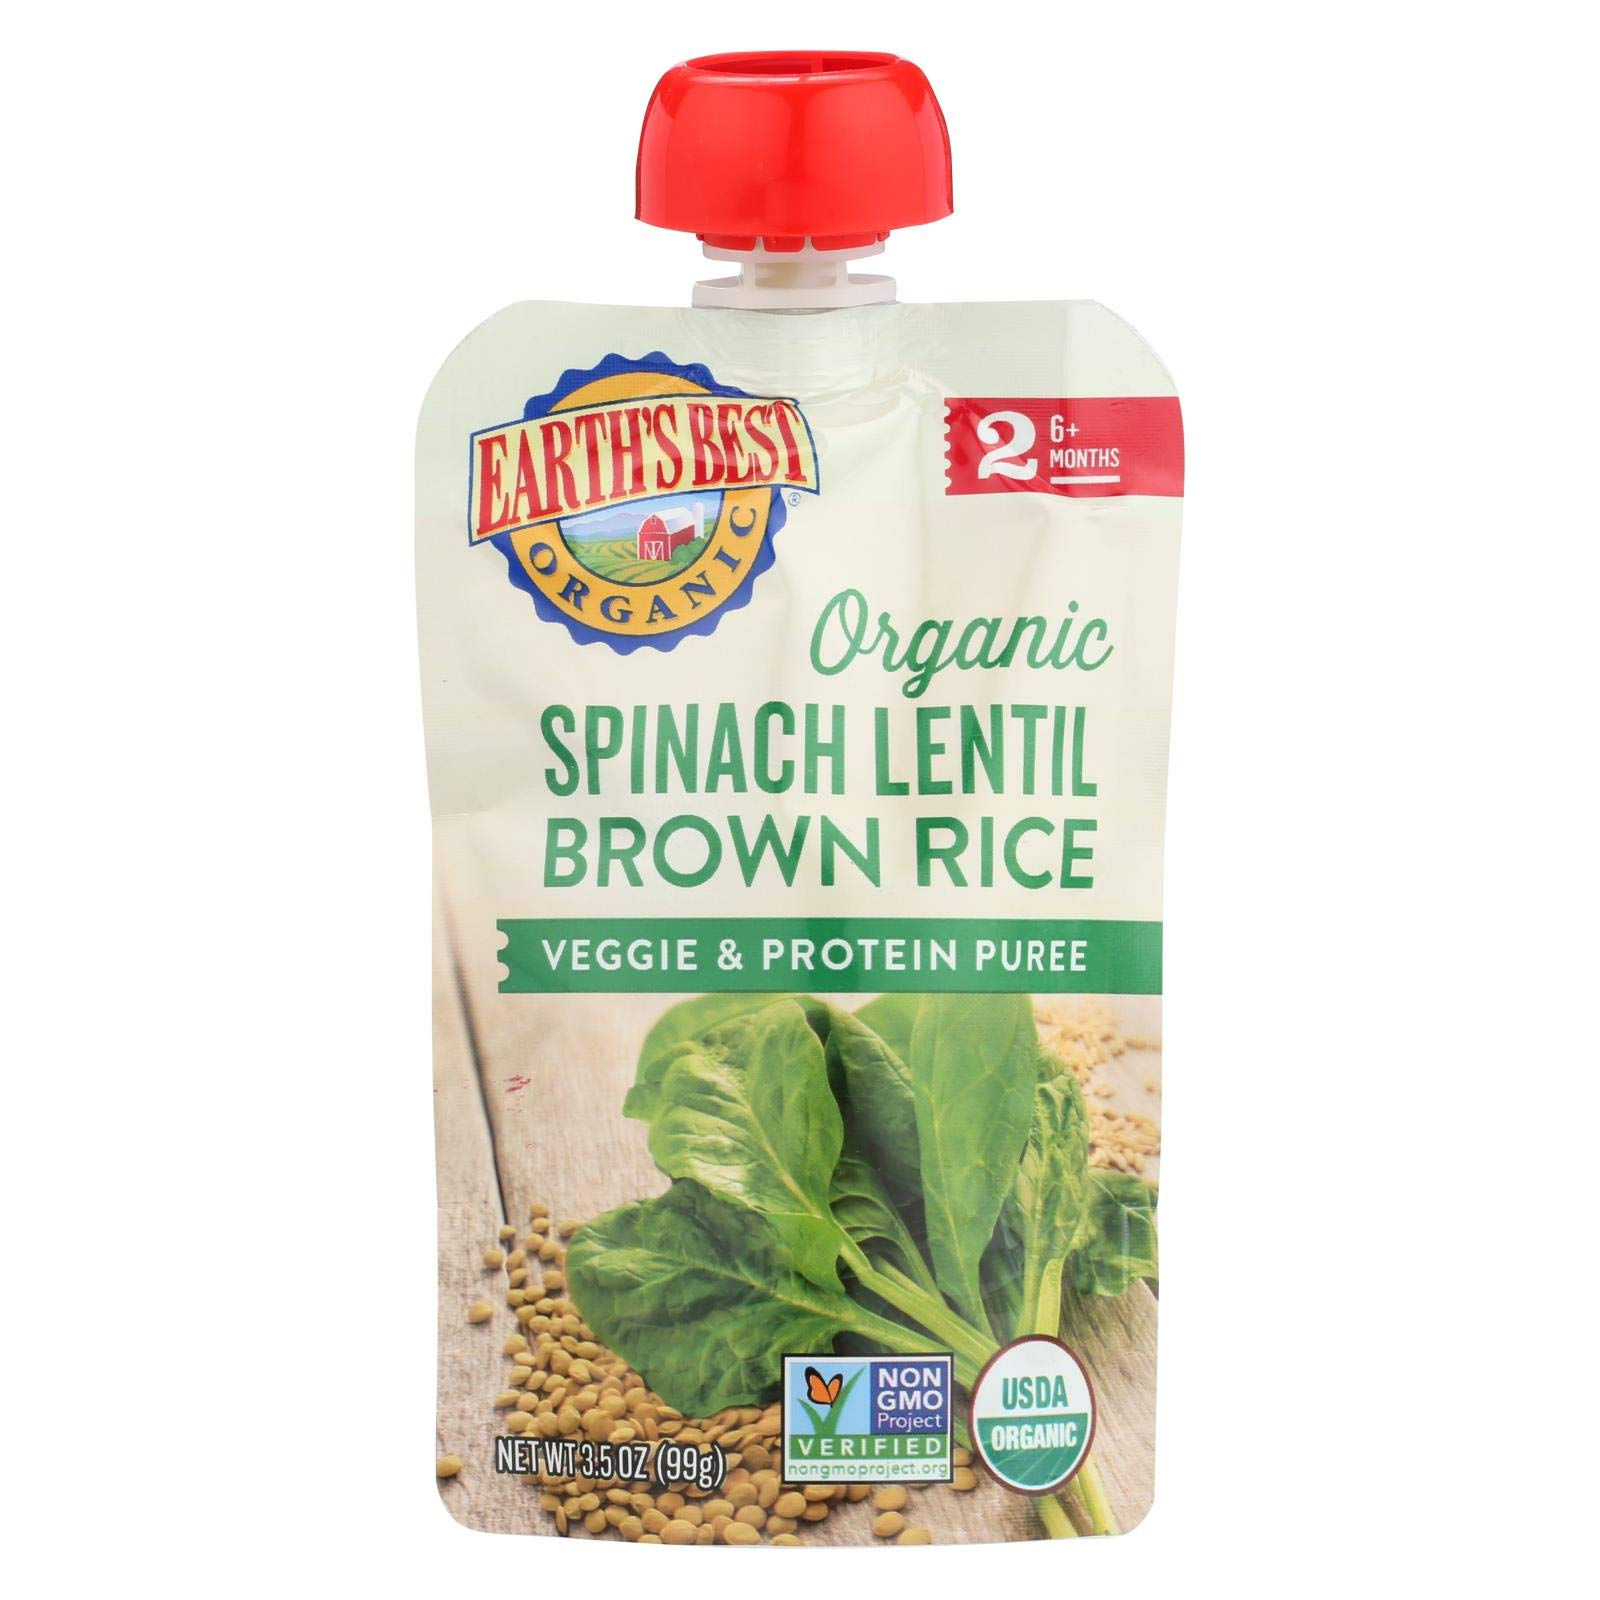 Earths Best Organic Peas Spinach Lentil Brown Rice Veggie Protein Infant Puree Pouch, 3.5 Ounce - 12 per case.